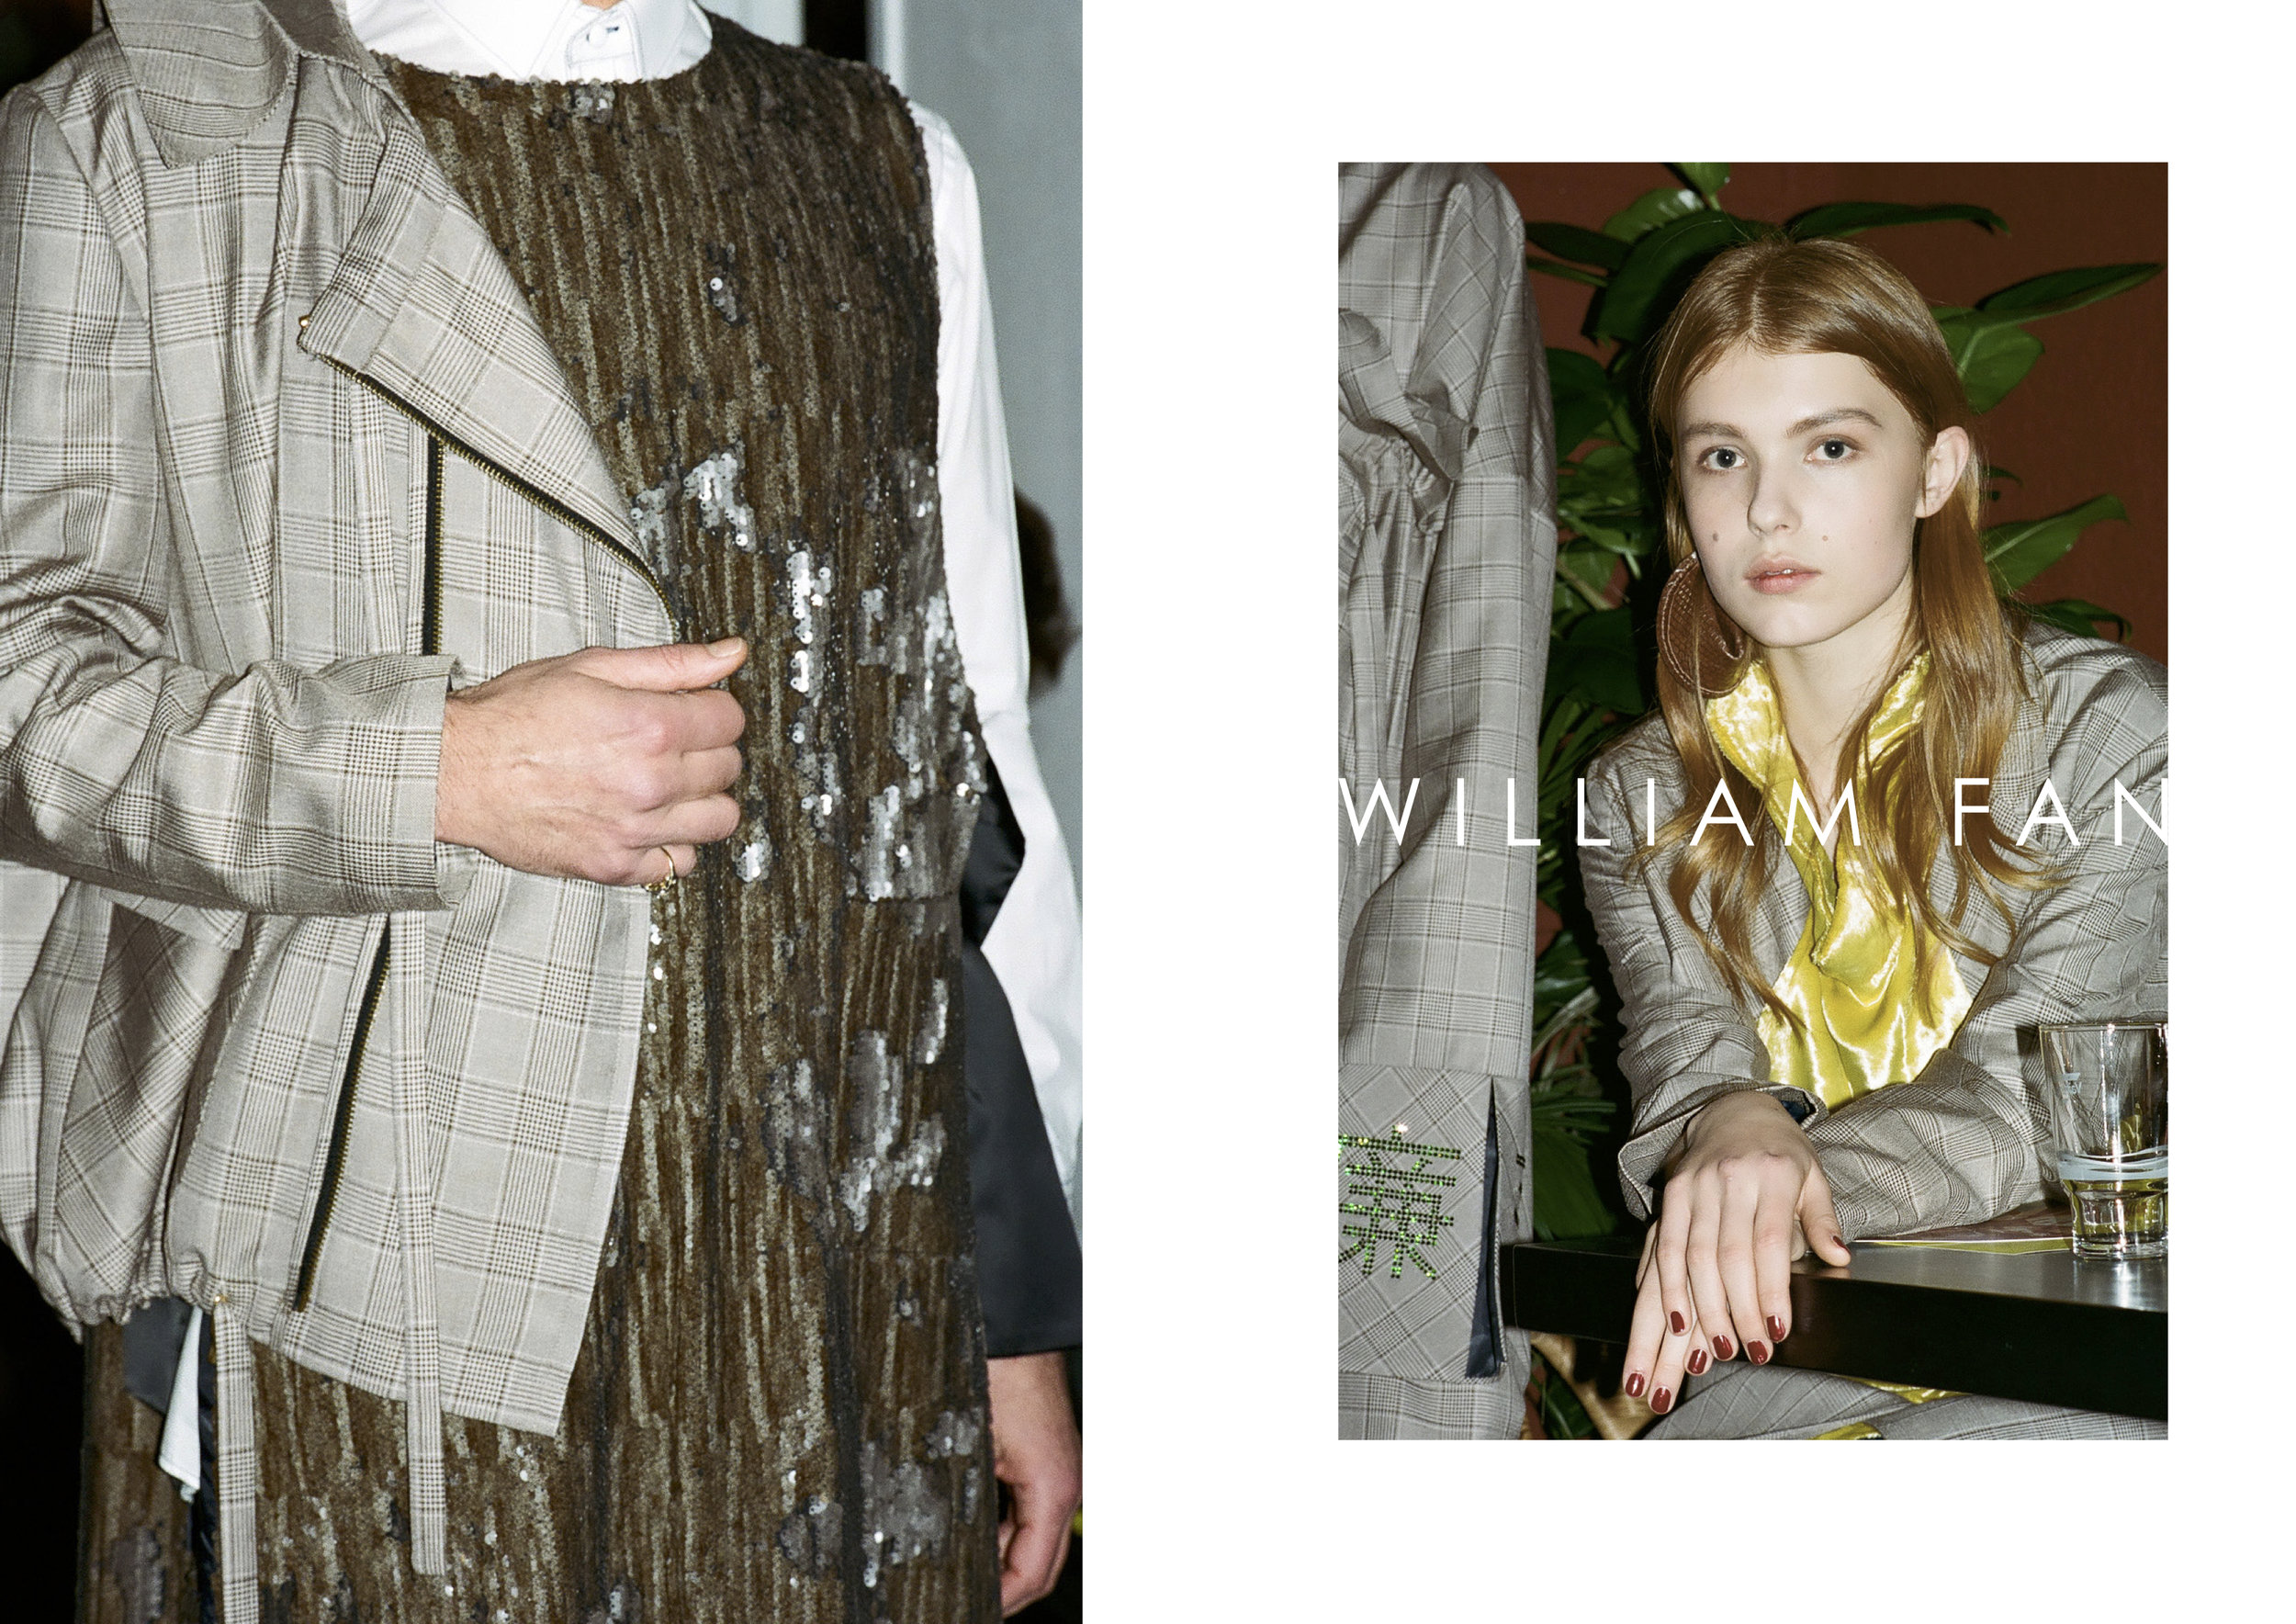 AW 18_19 CAMPAIGN INDESIGN 3.jpg